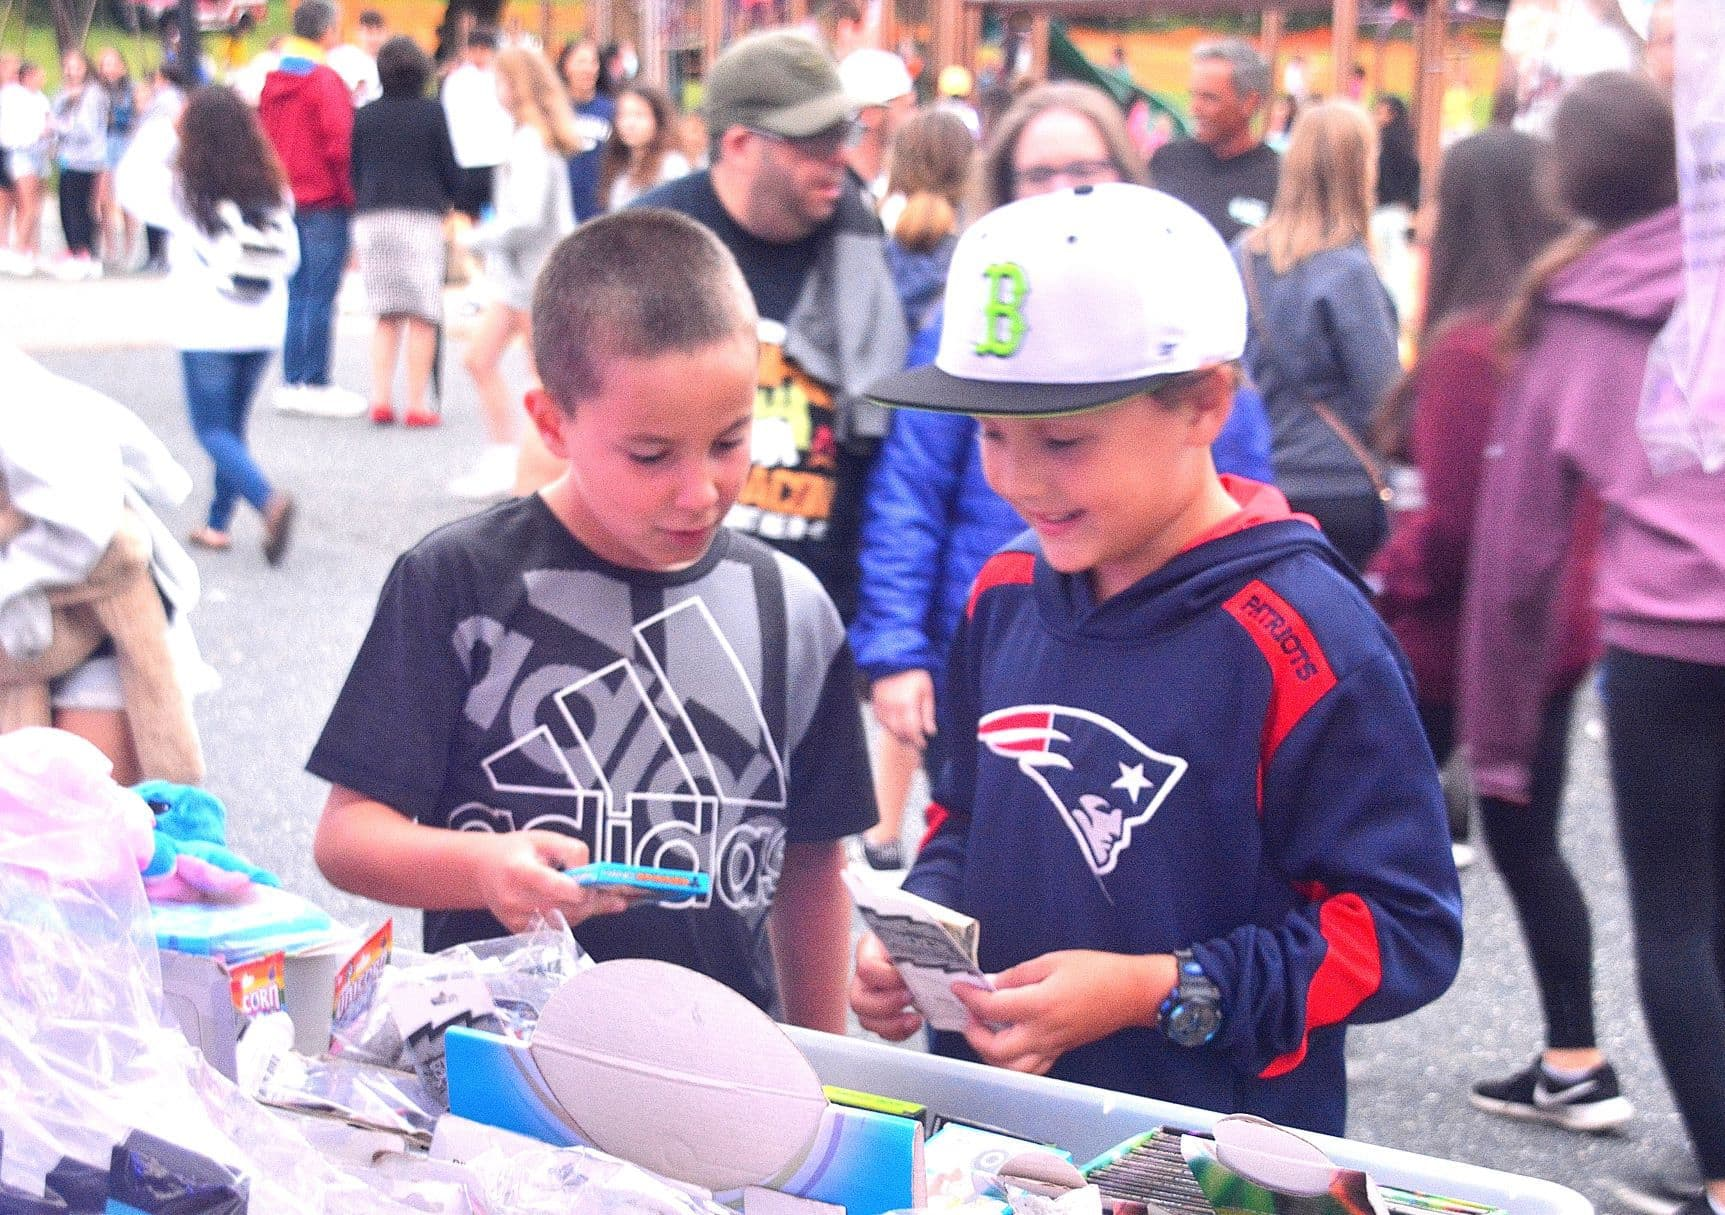 Nine-year-old friends Chris Palleiko and Anthony Leadbeater purchase novelty souvenirs.